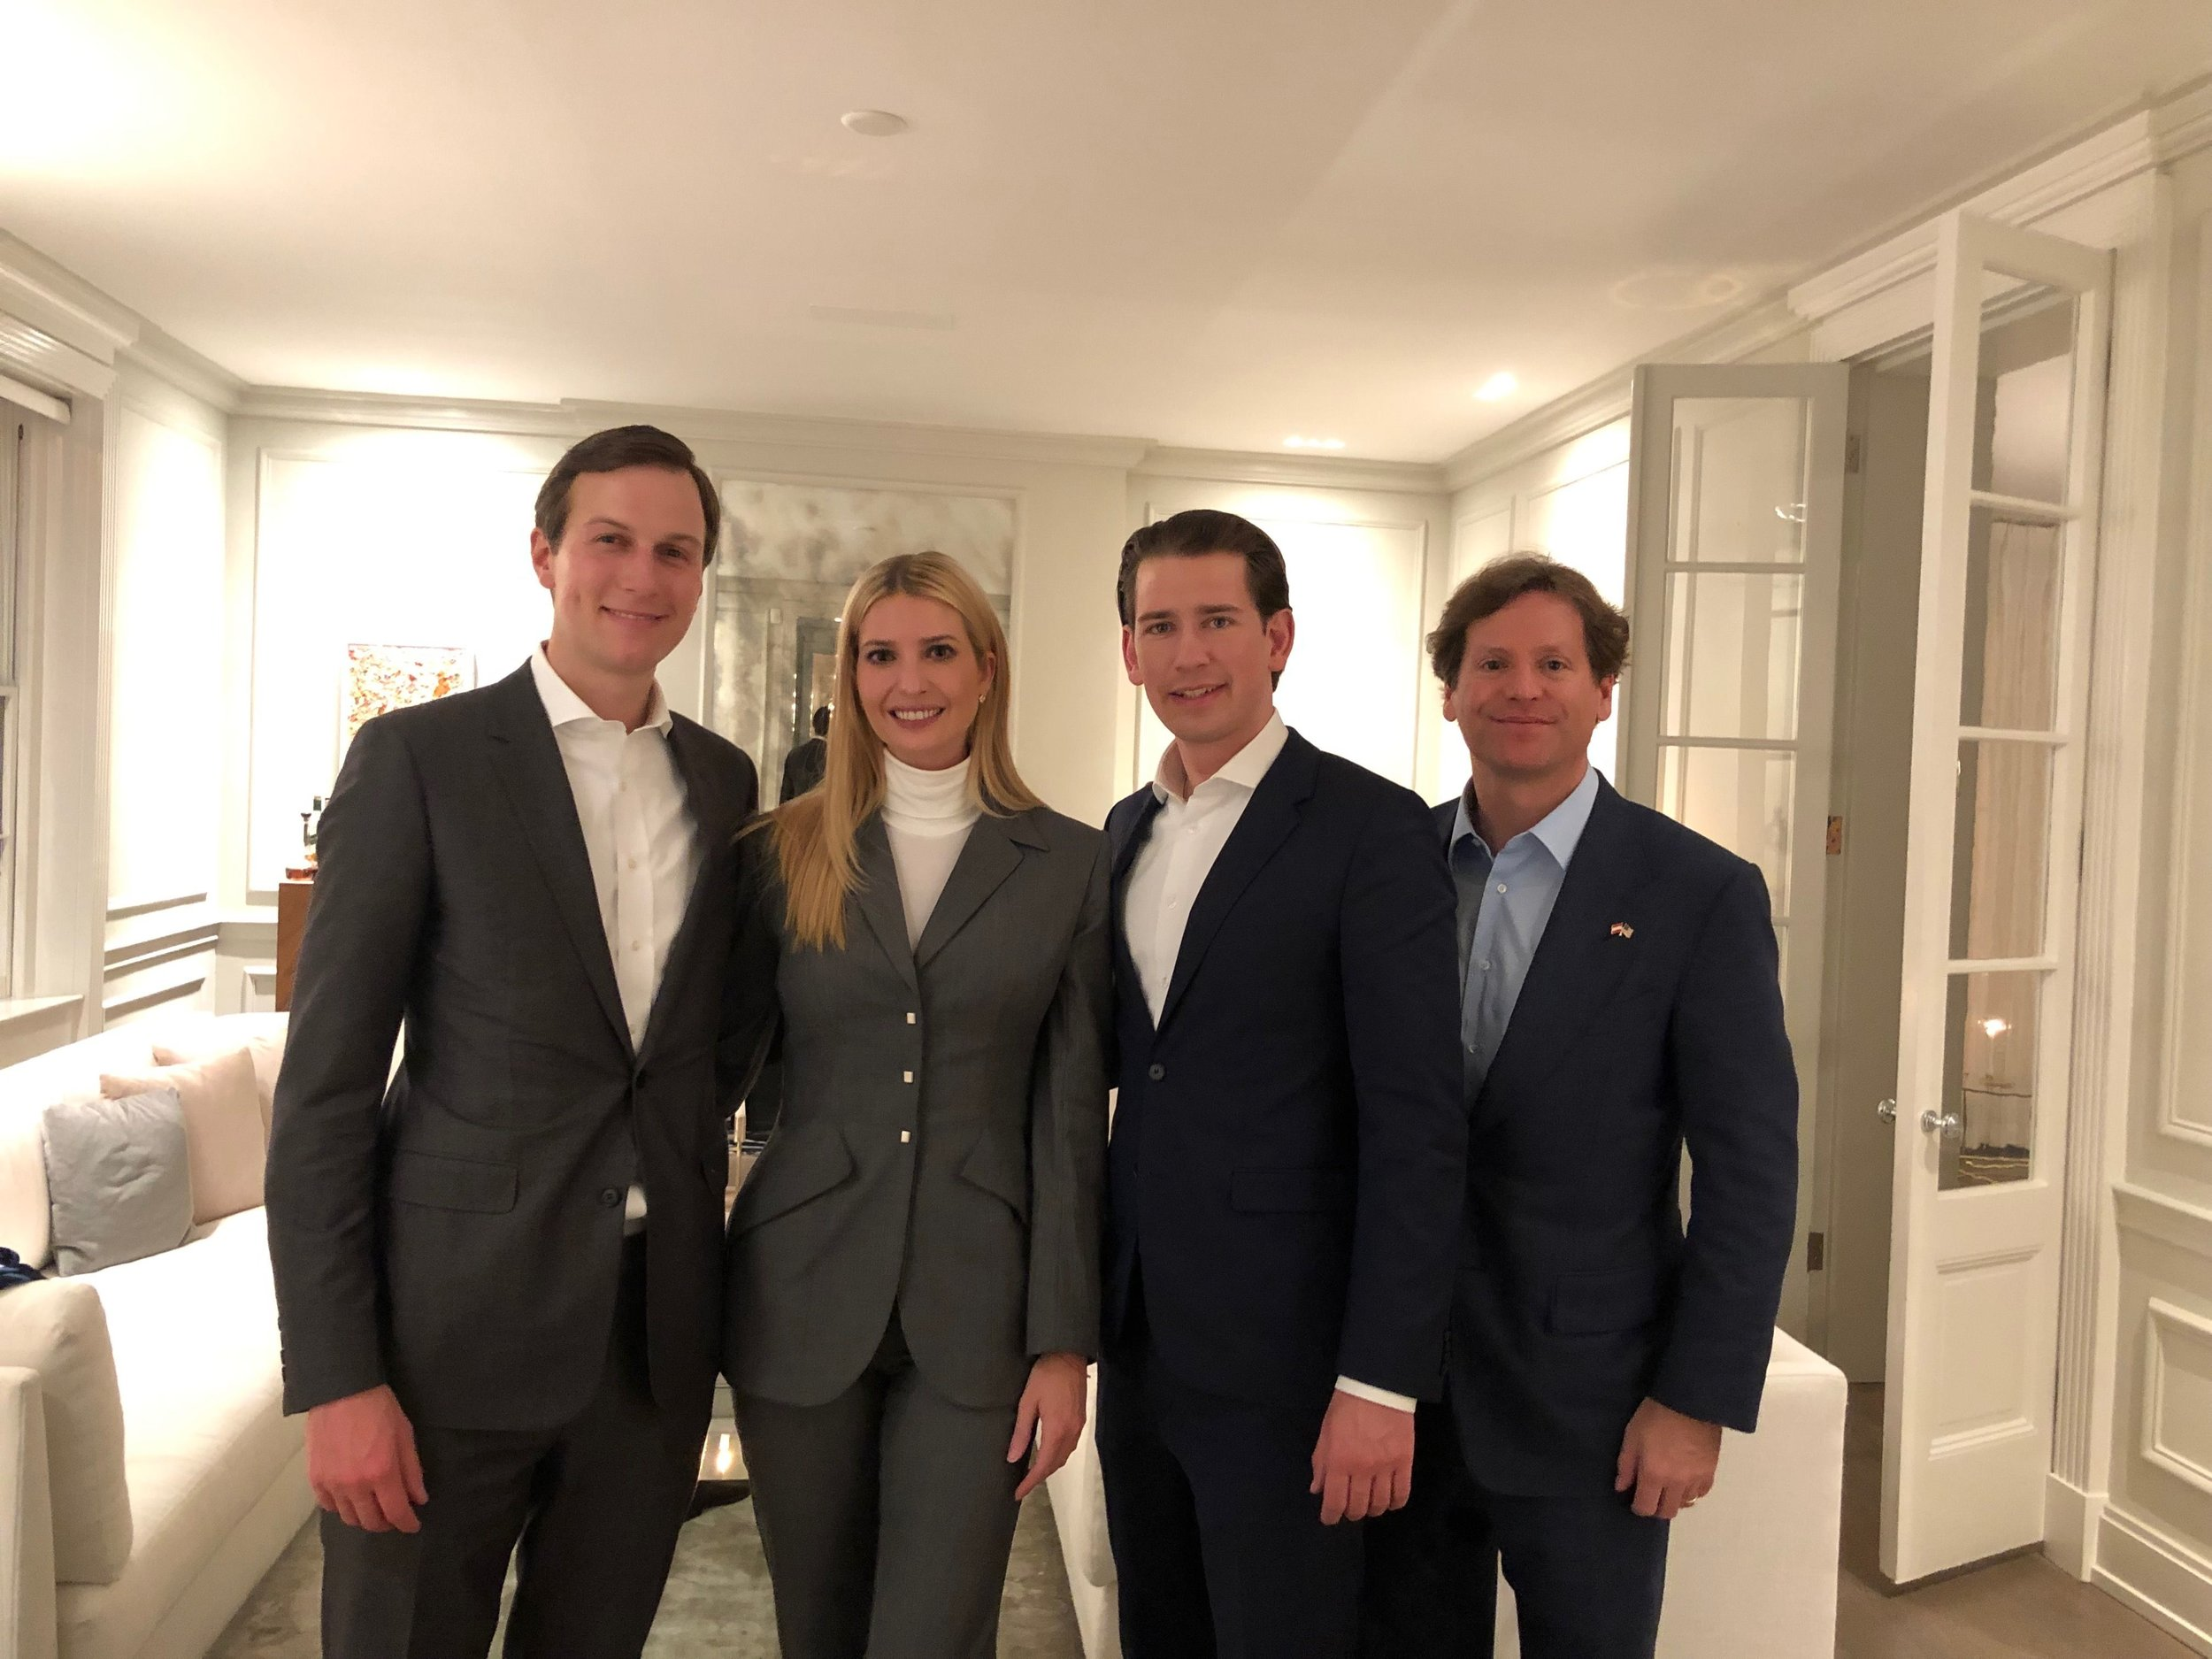 From left: Senior White House Advisors Jared and Ivanka Trump, Chancellor Sebastian Kurz, U.S. Ambassador to Austria Trevor Traina  (c) Trevor Traina